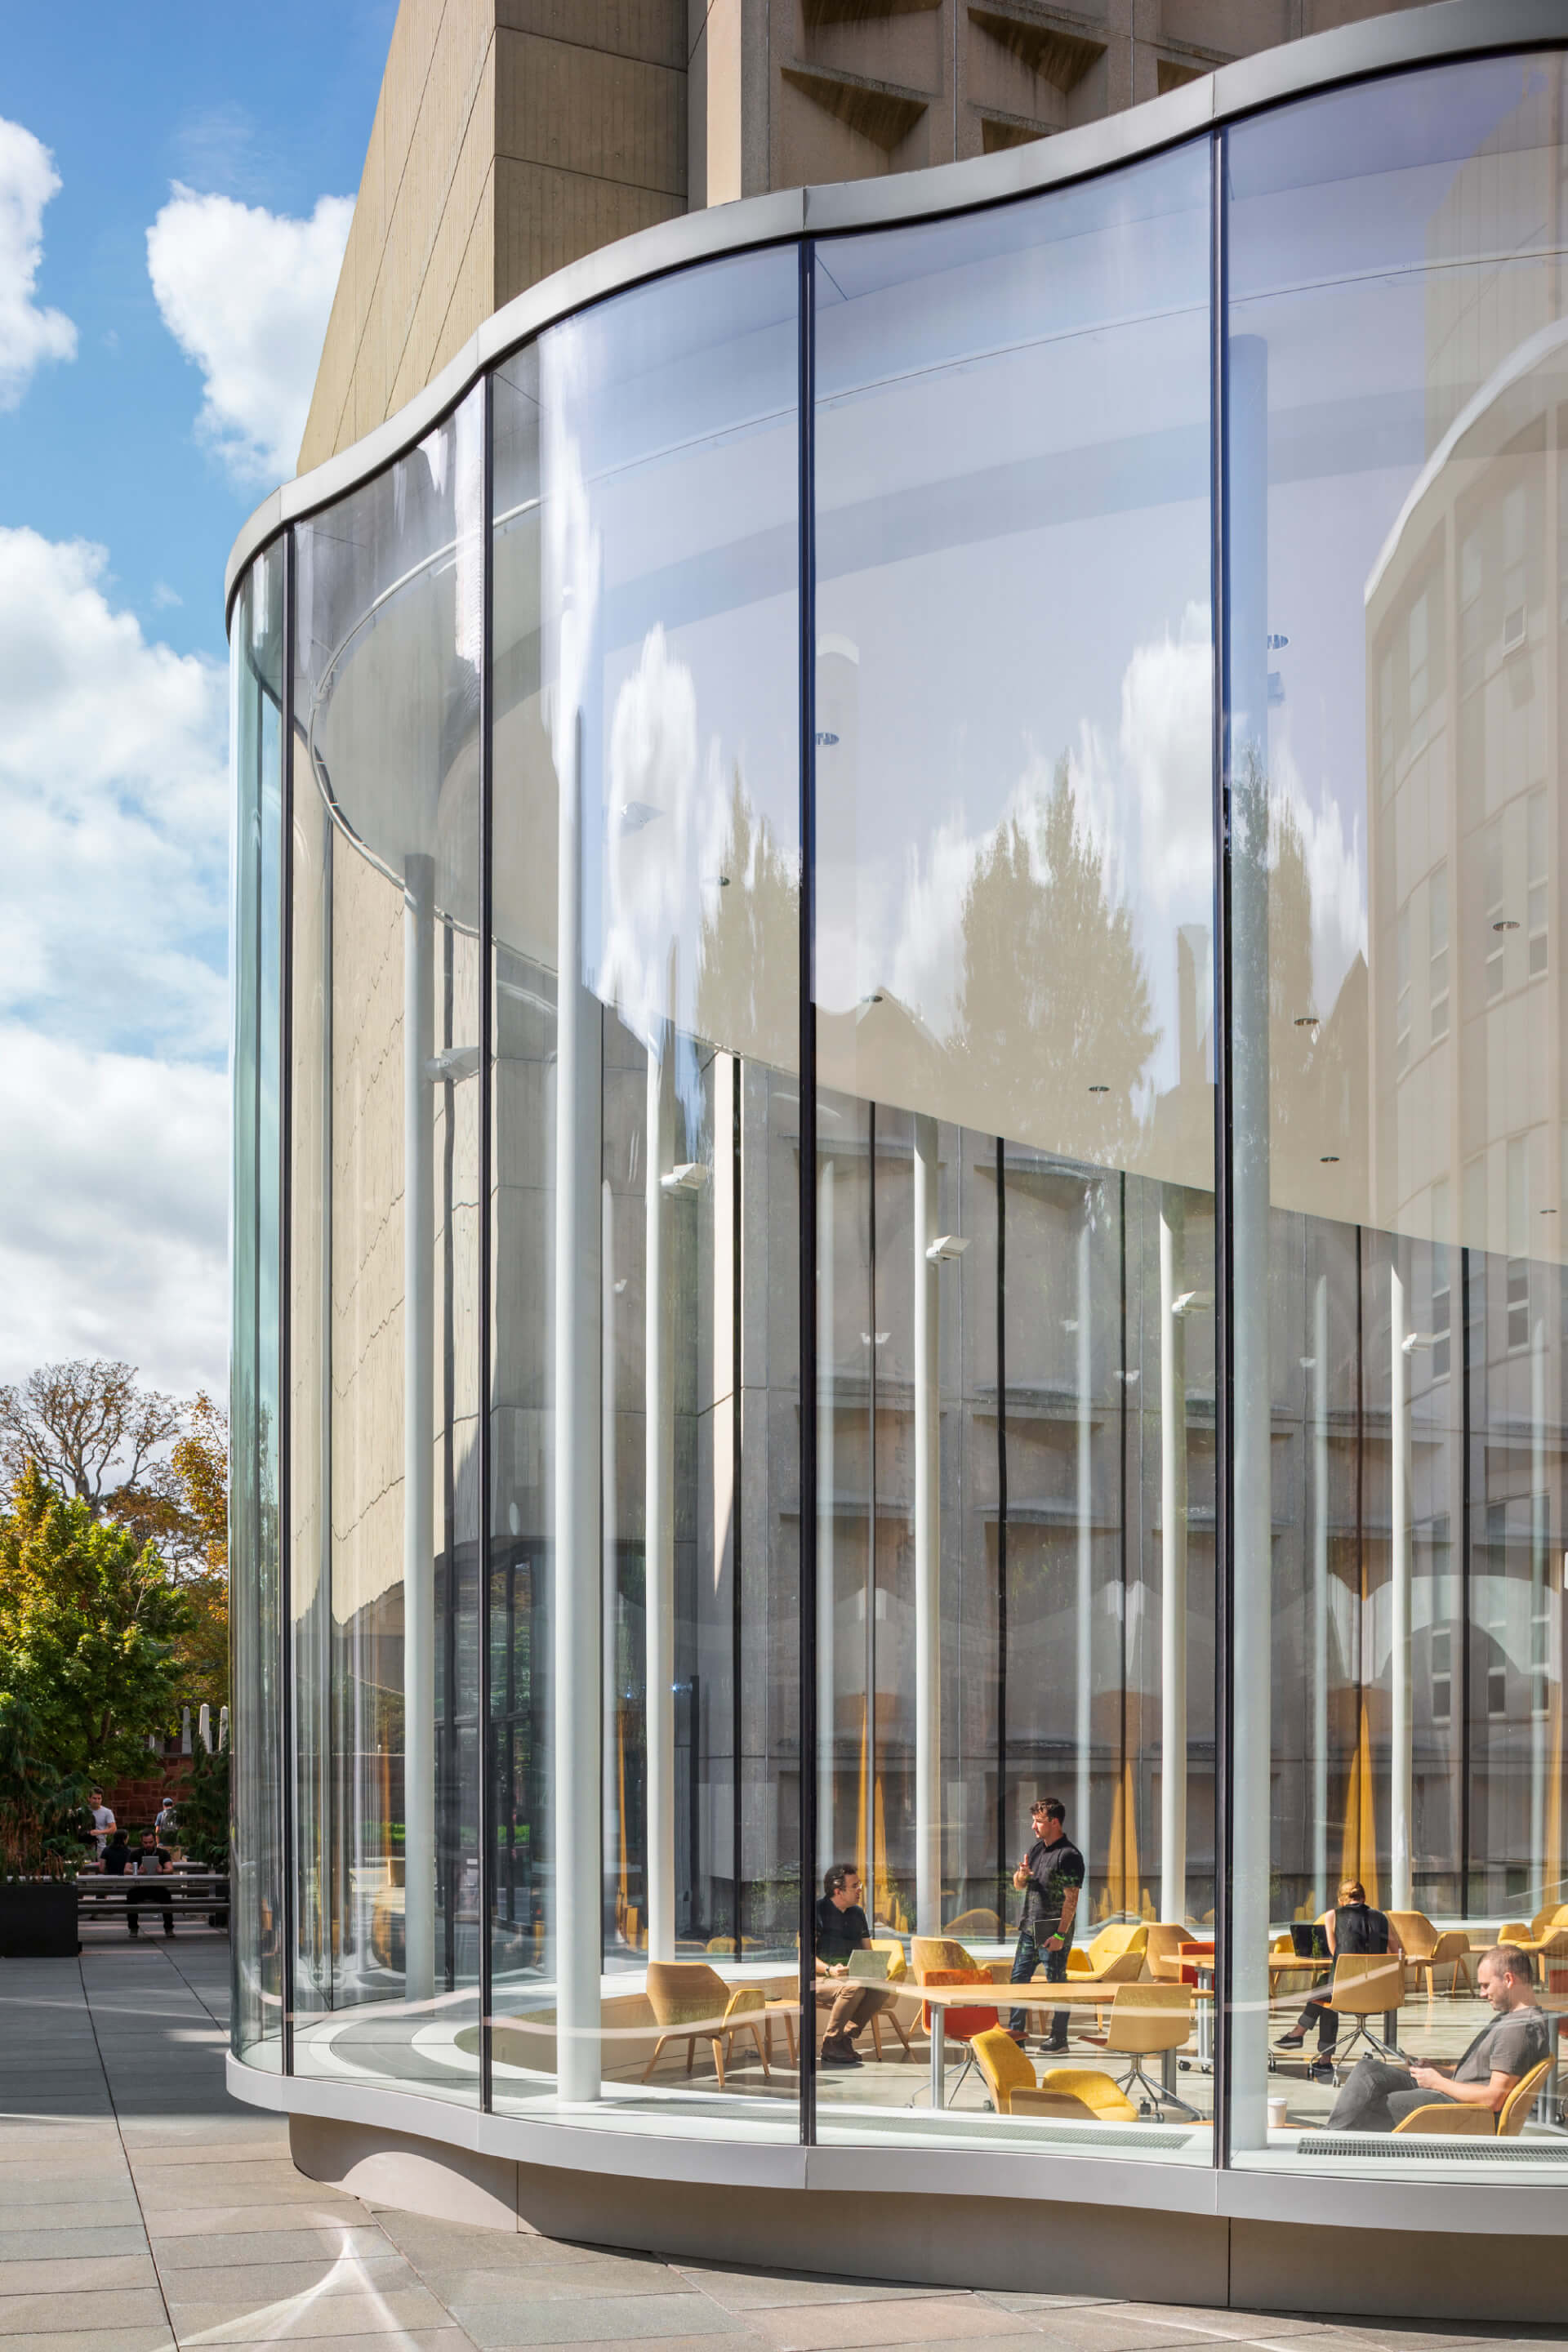 A double-height glazed entrance lobby with curved and scalloped glass panels made from float glass